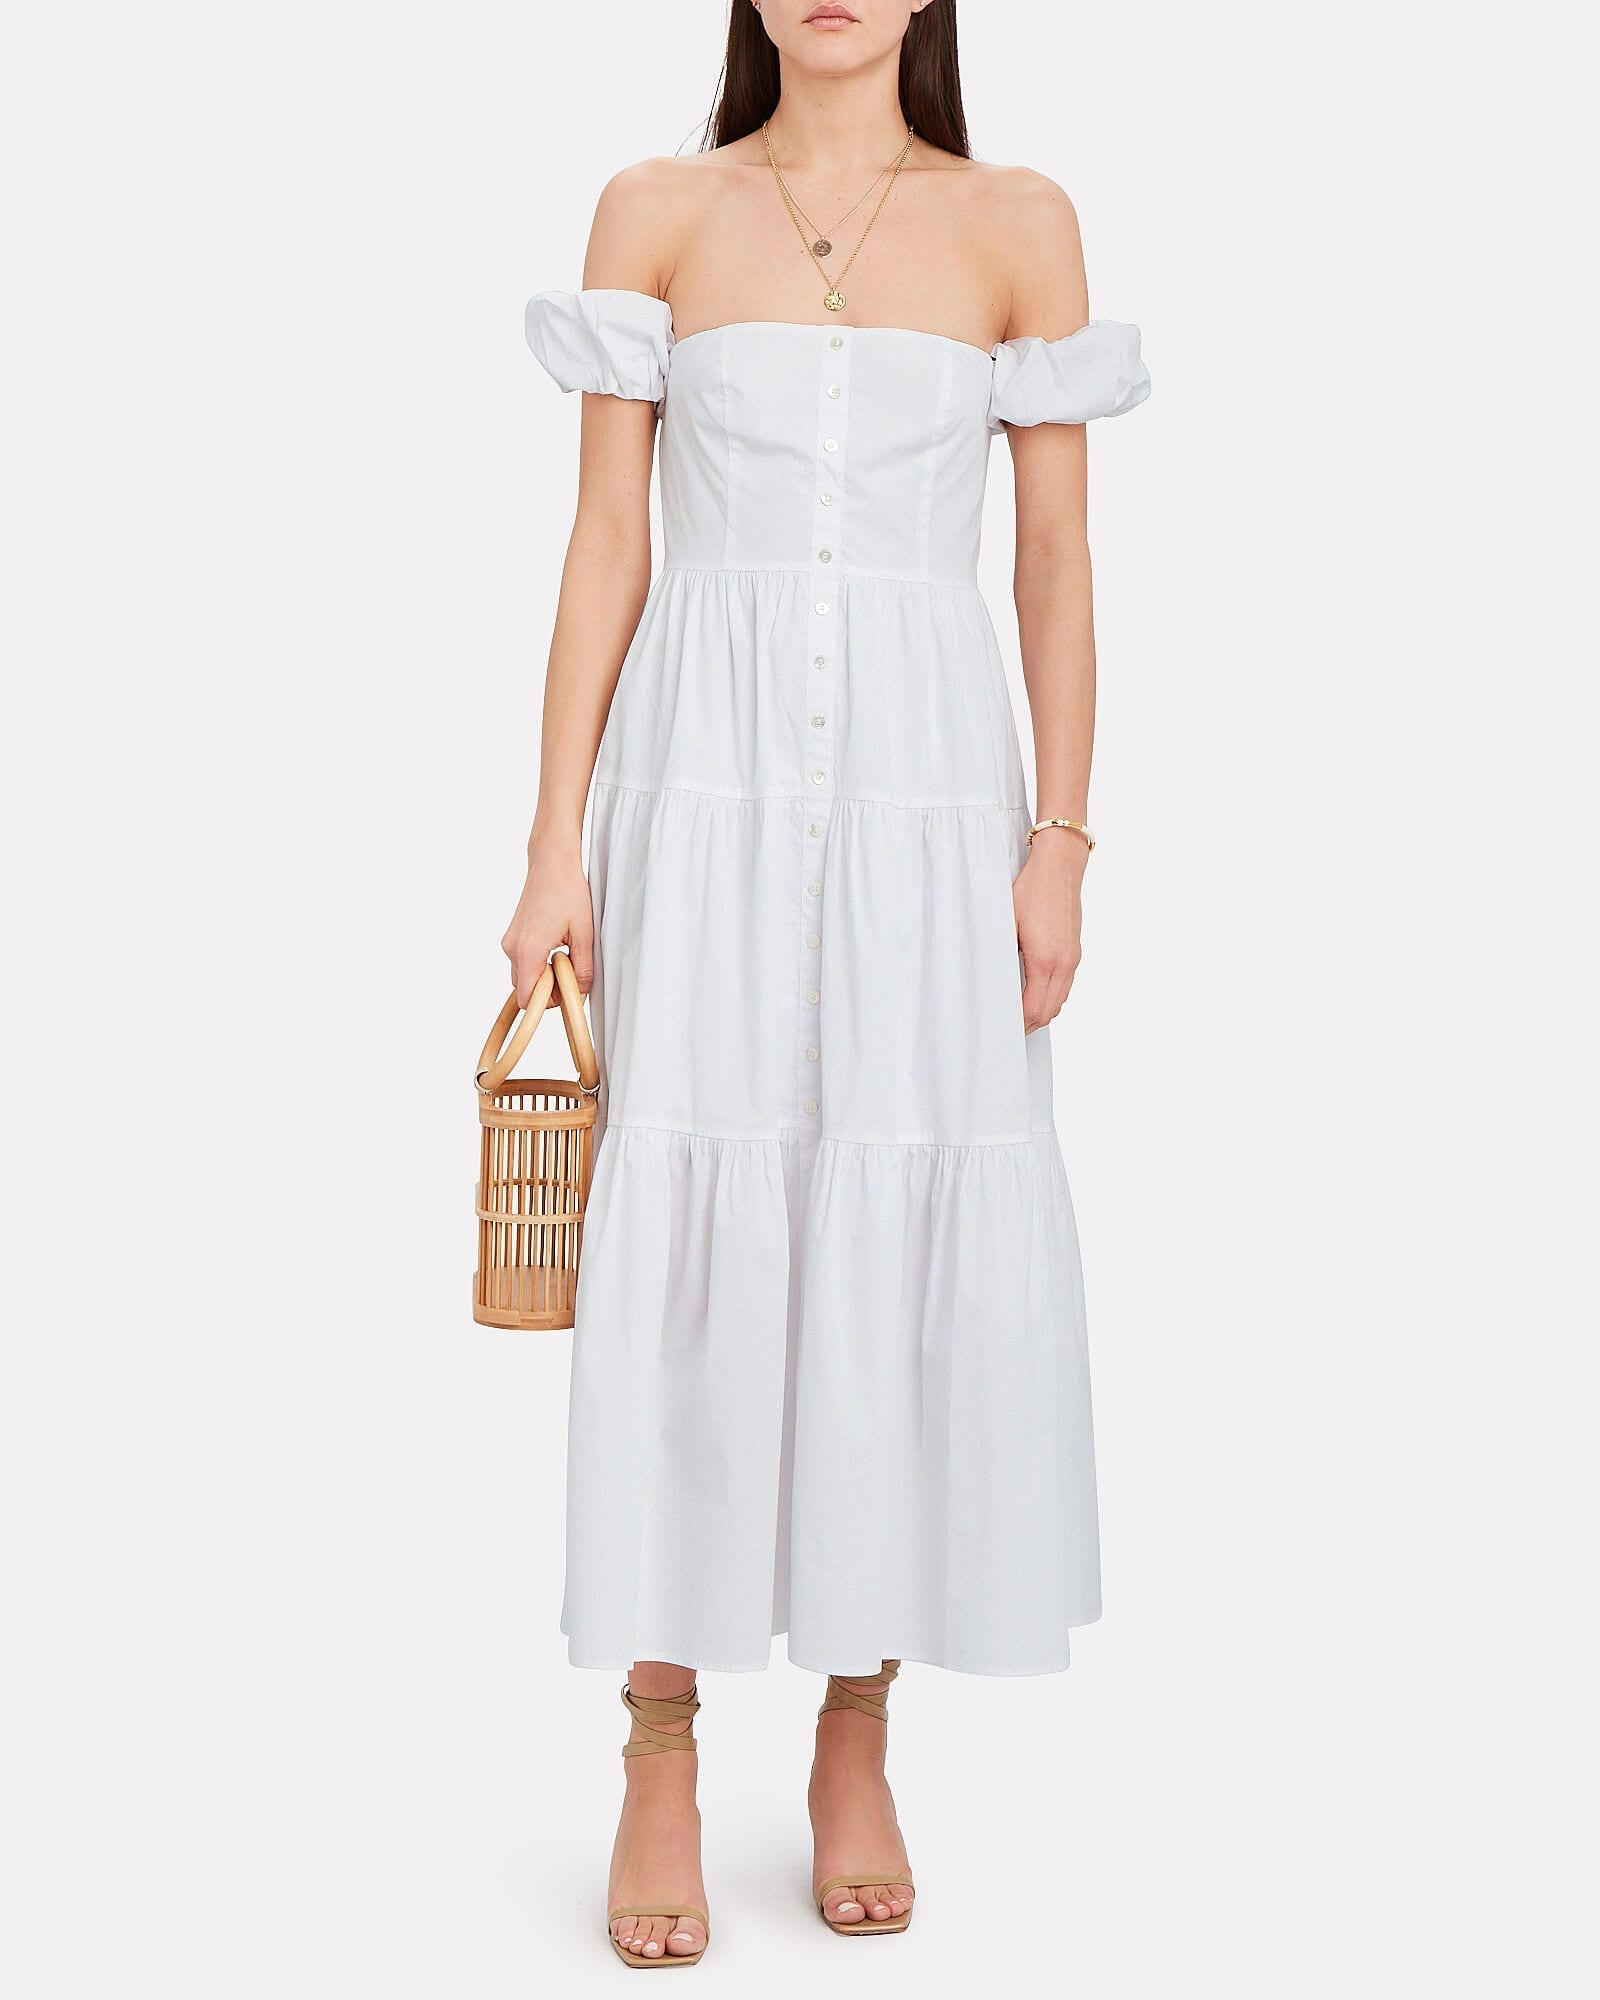 STAUD Elio Off-The-Shoulder Cotton Dress